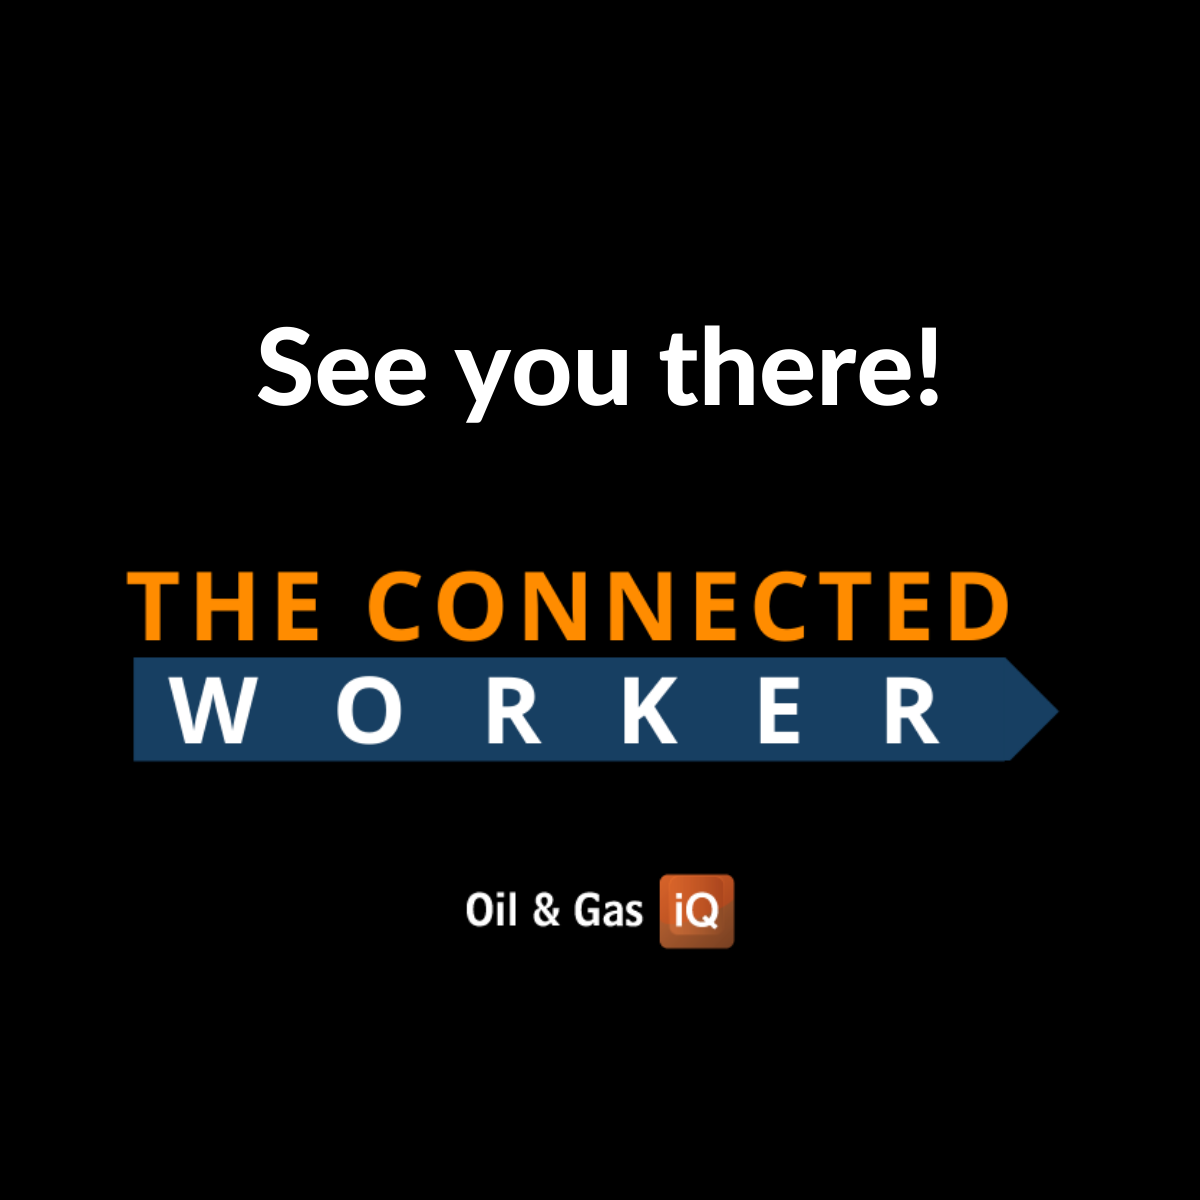 IQPC connected worker